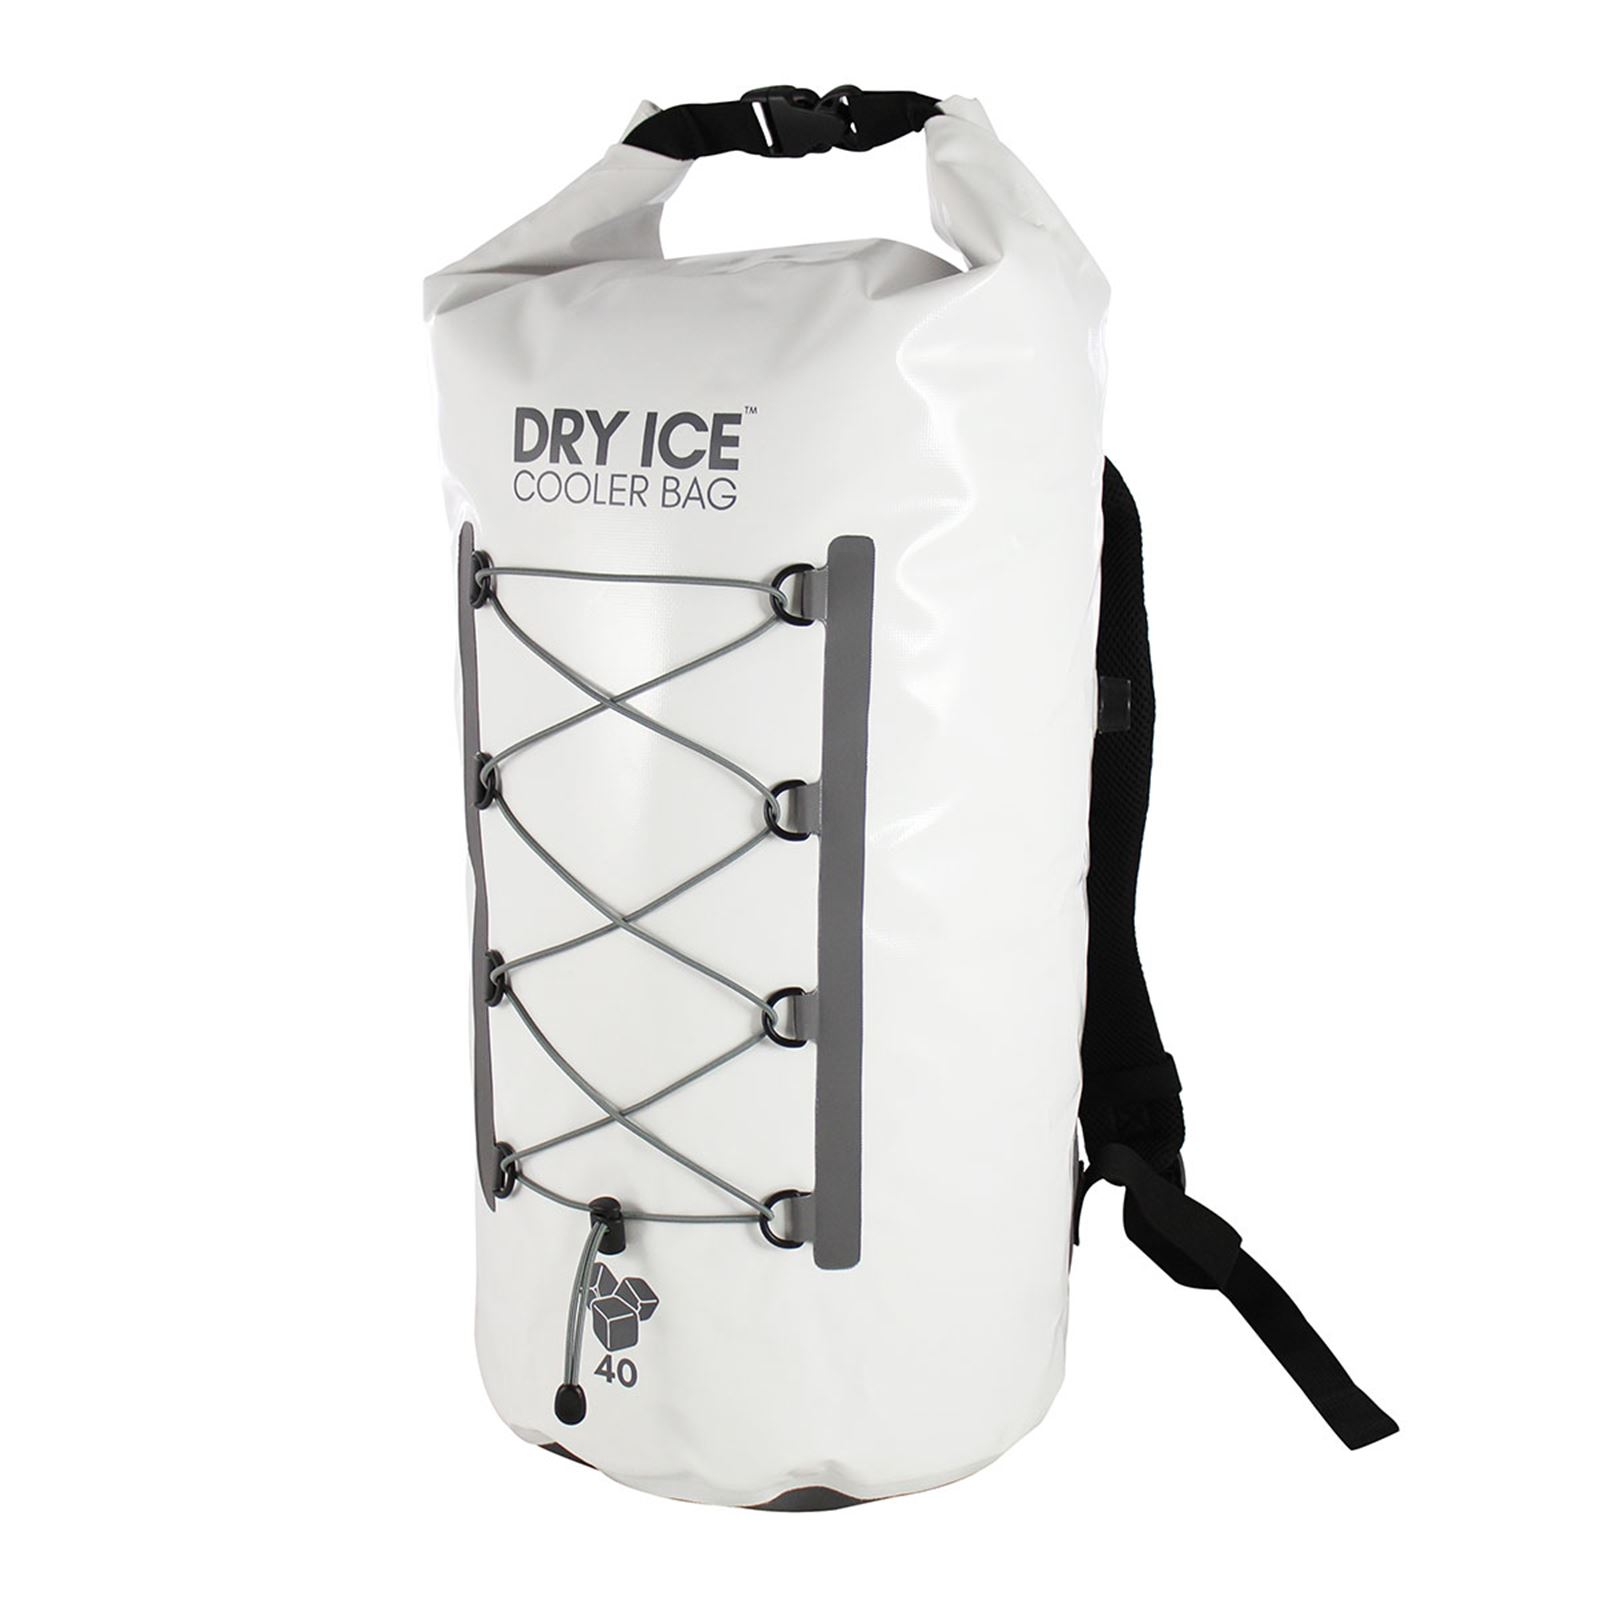 Dry Ice Premium Cooler Backpack 40 Lit - White